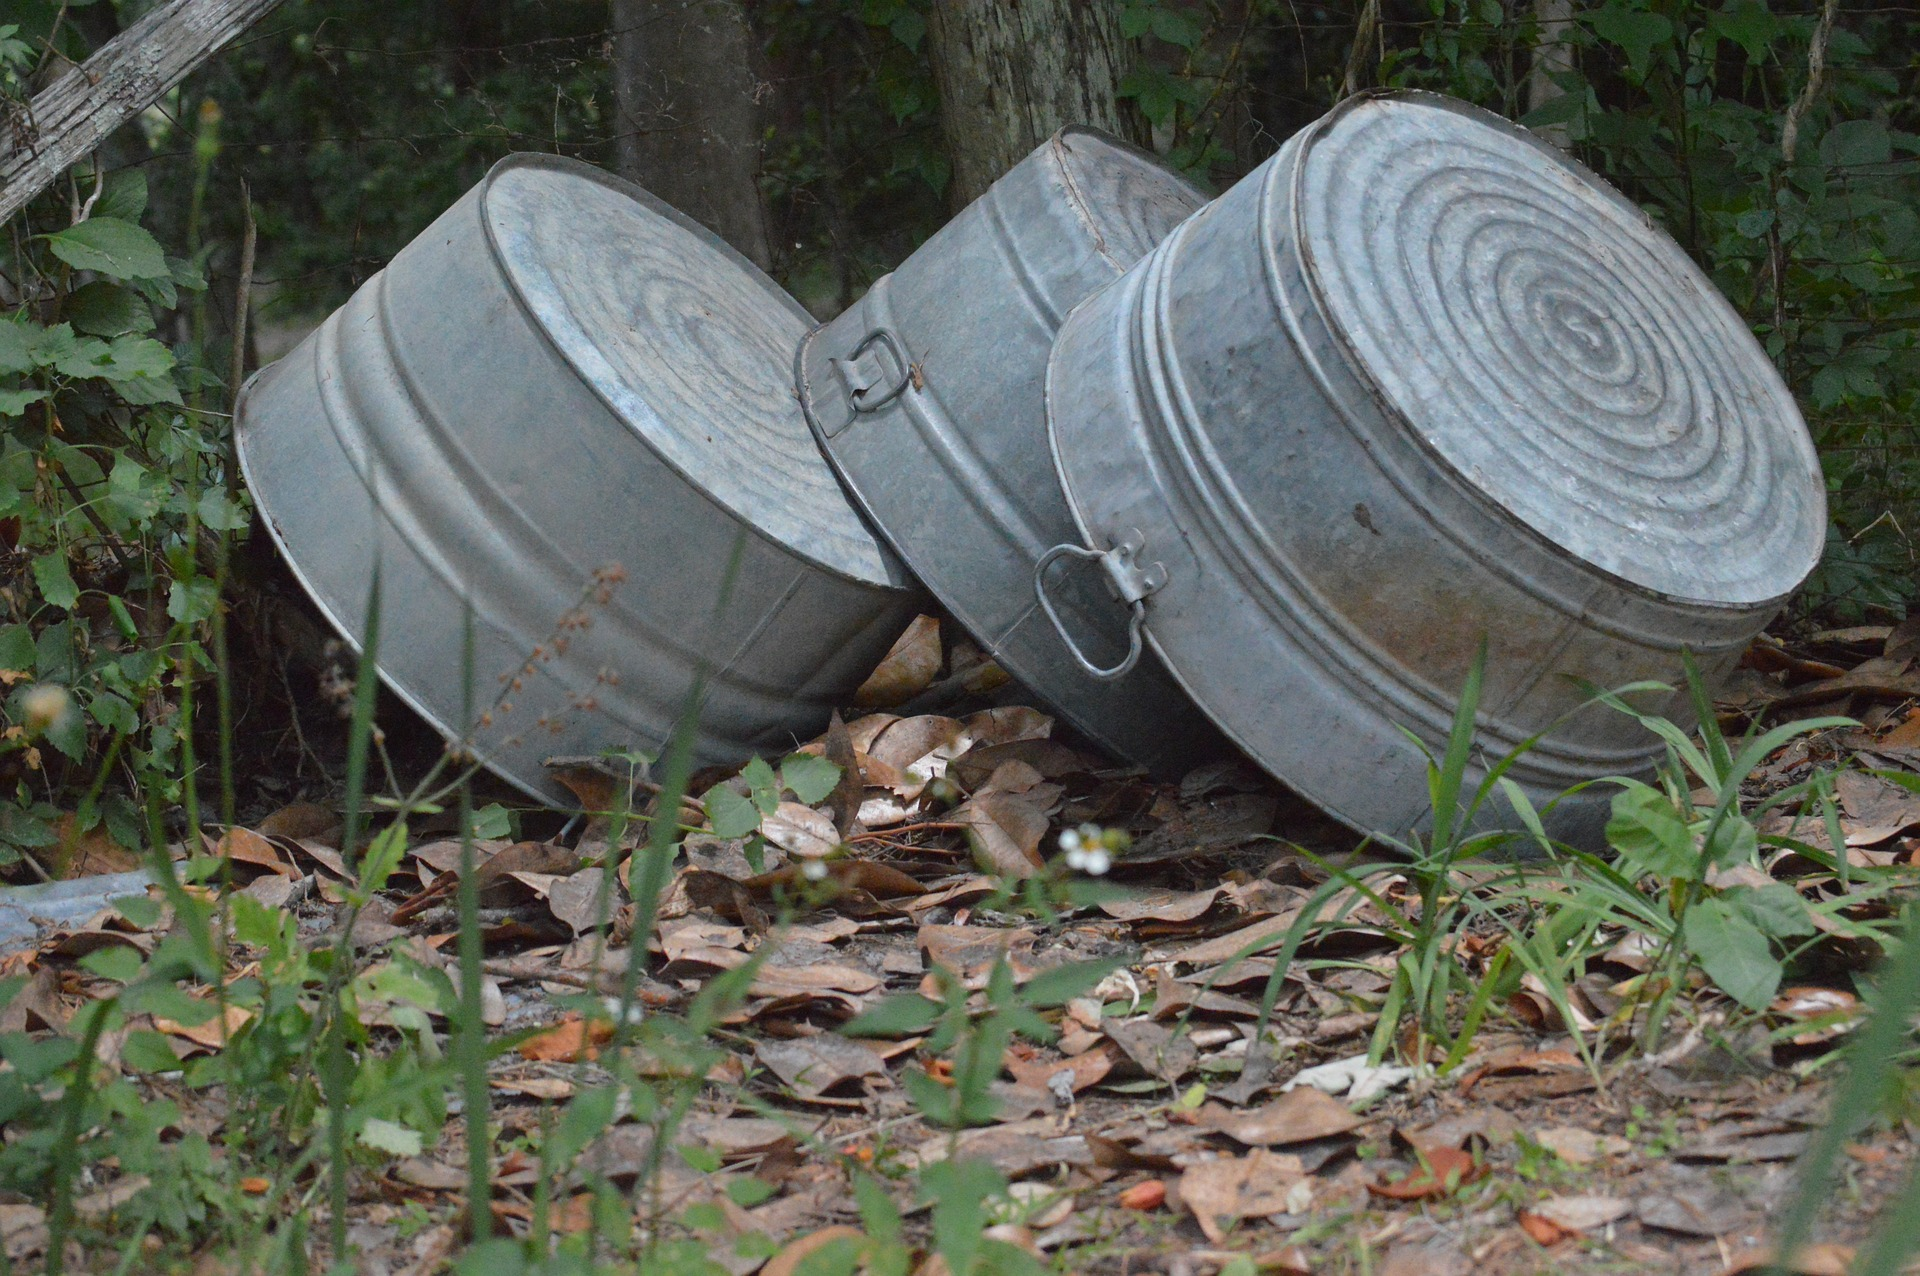 old-fashioned laundry tubs - photo from pixabay